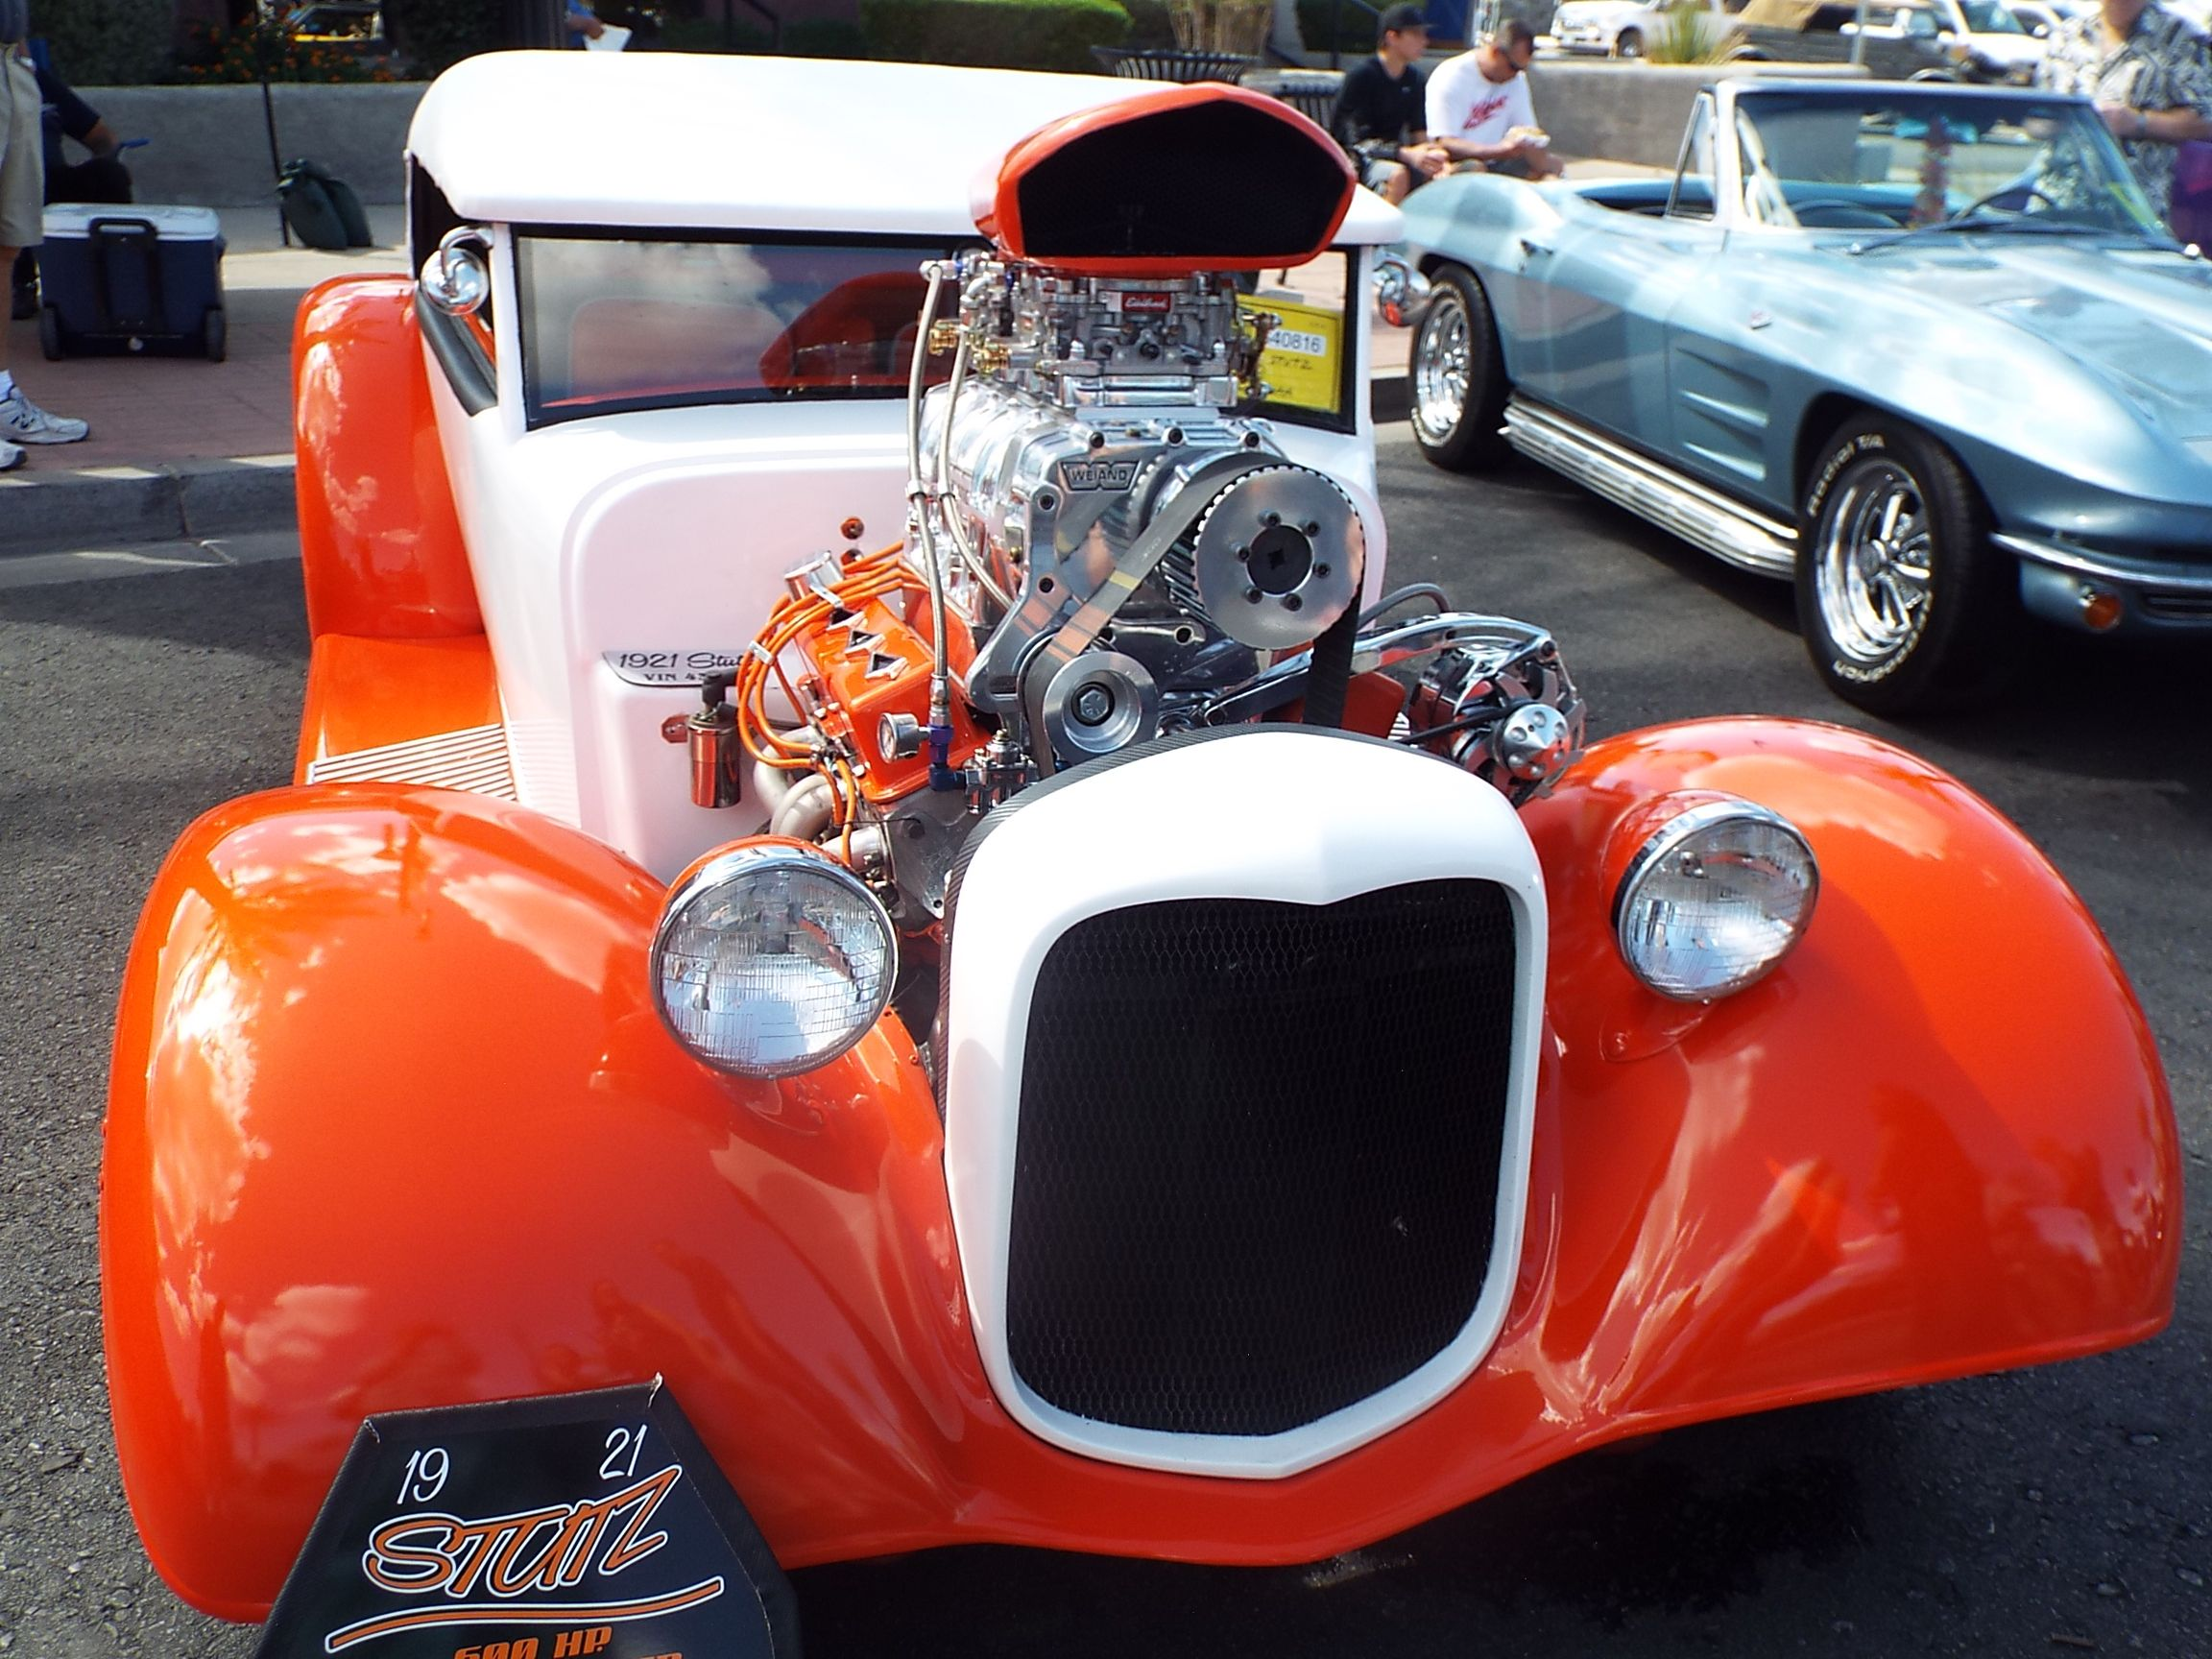 Classic Cars Show Their Stuff at Henderson Car Show - Living Las Vegas